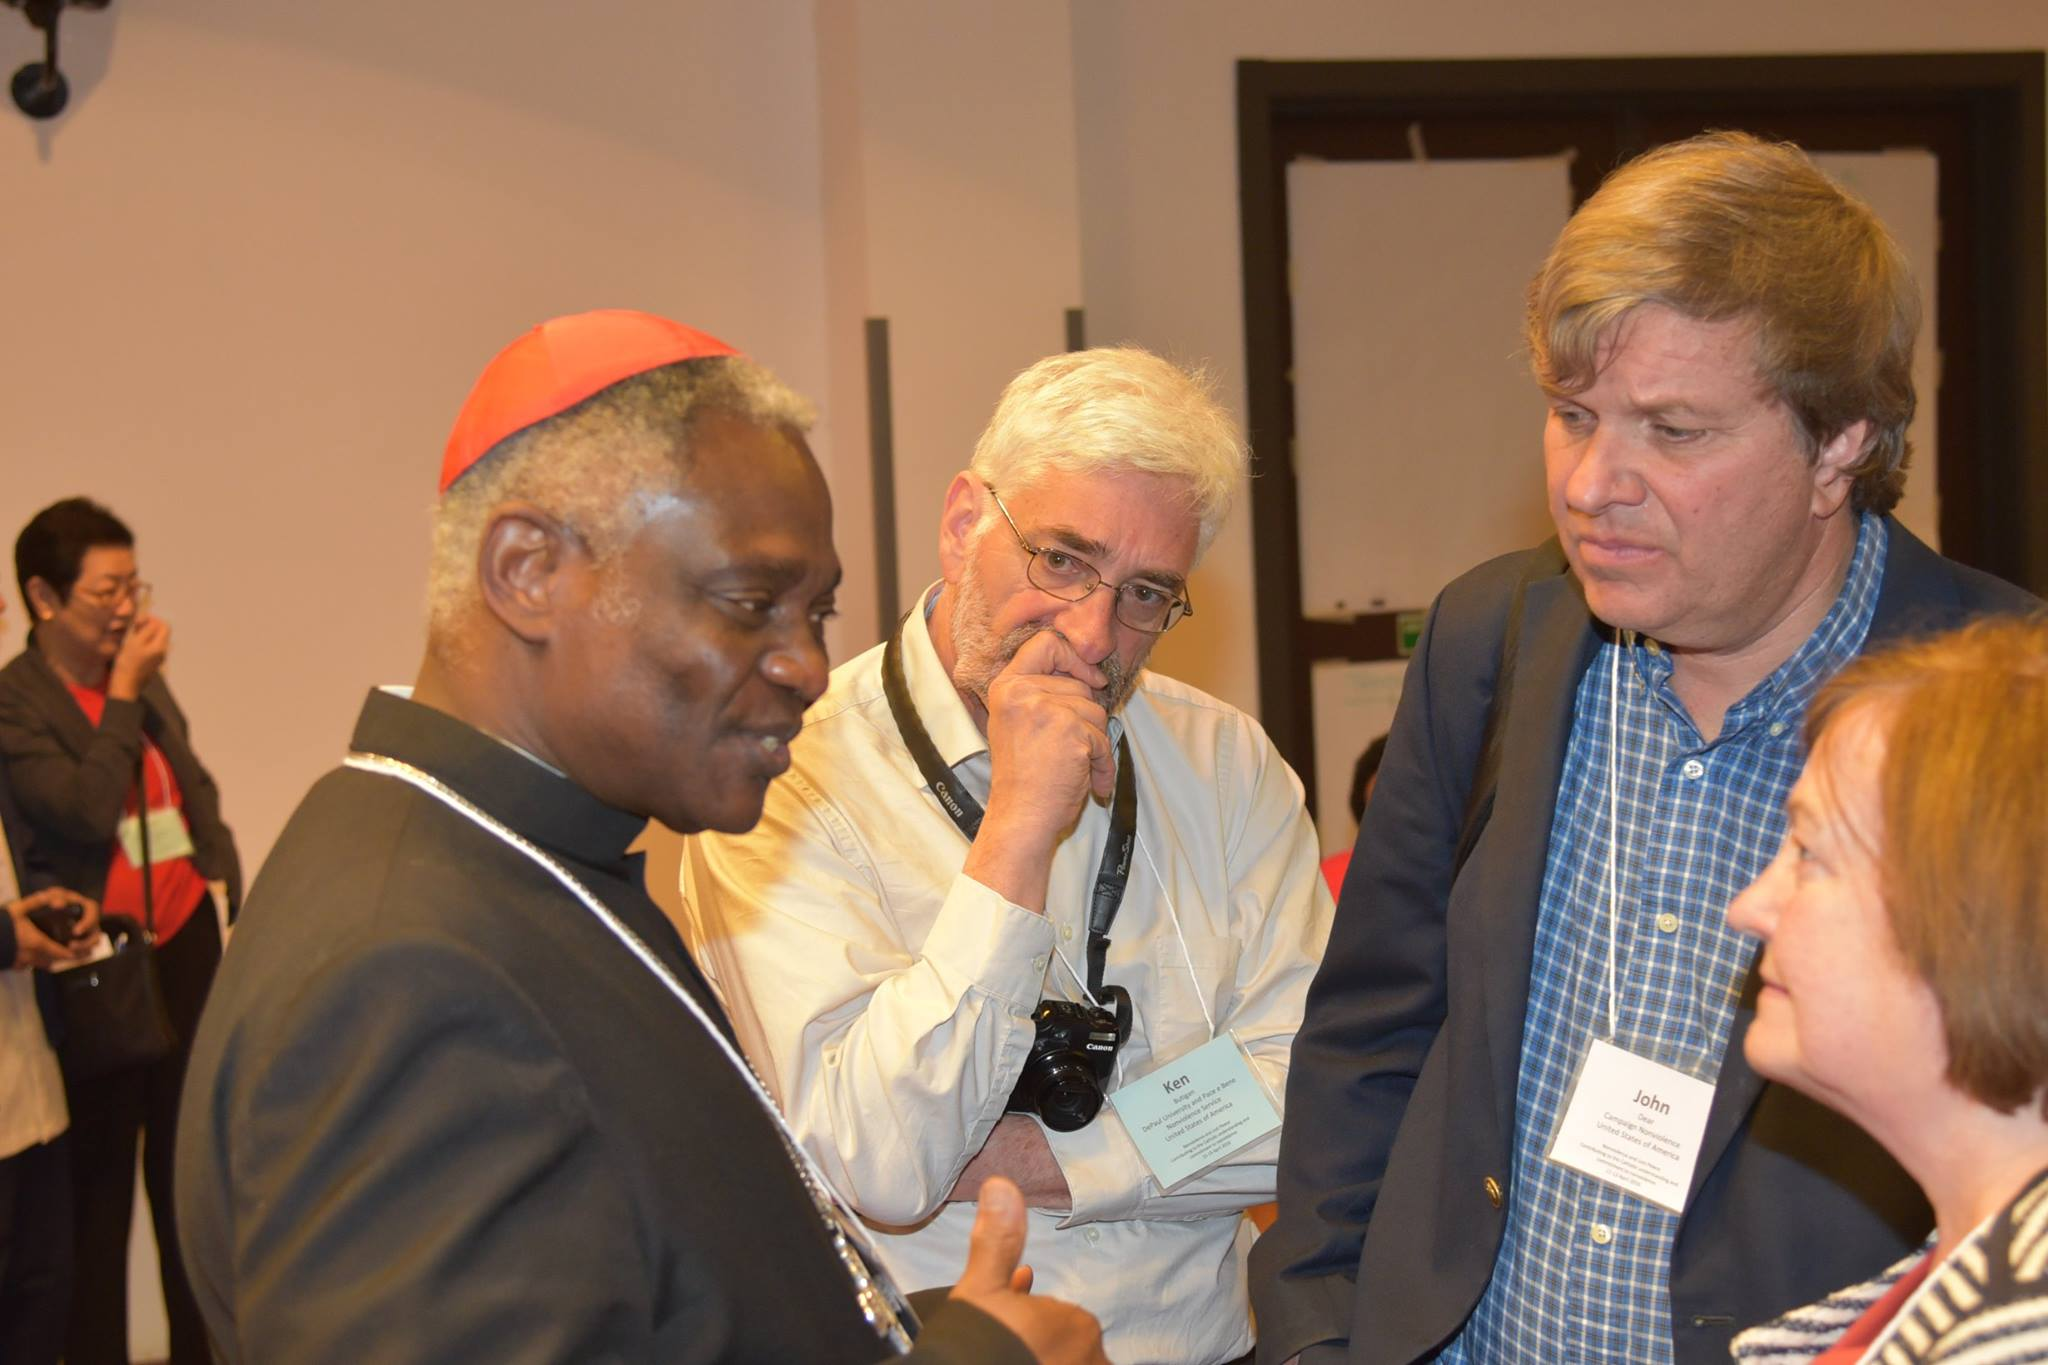 From left: Cardinal Turkson, Dr. Ken Butigan, Rev. John Dear and Nobel Peace Prize Winner Mairead Maguire